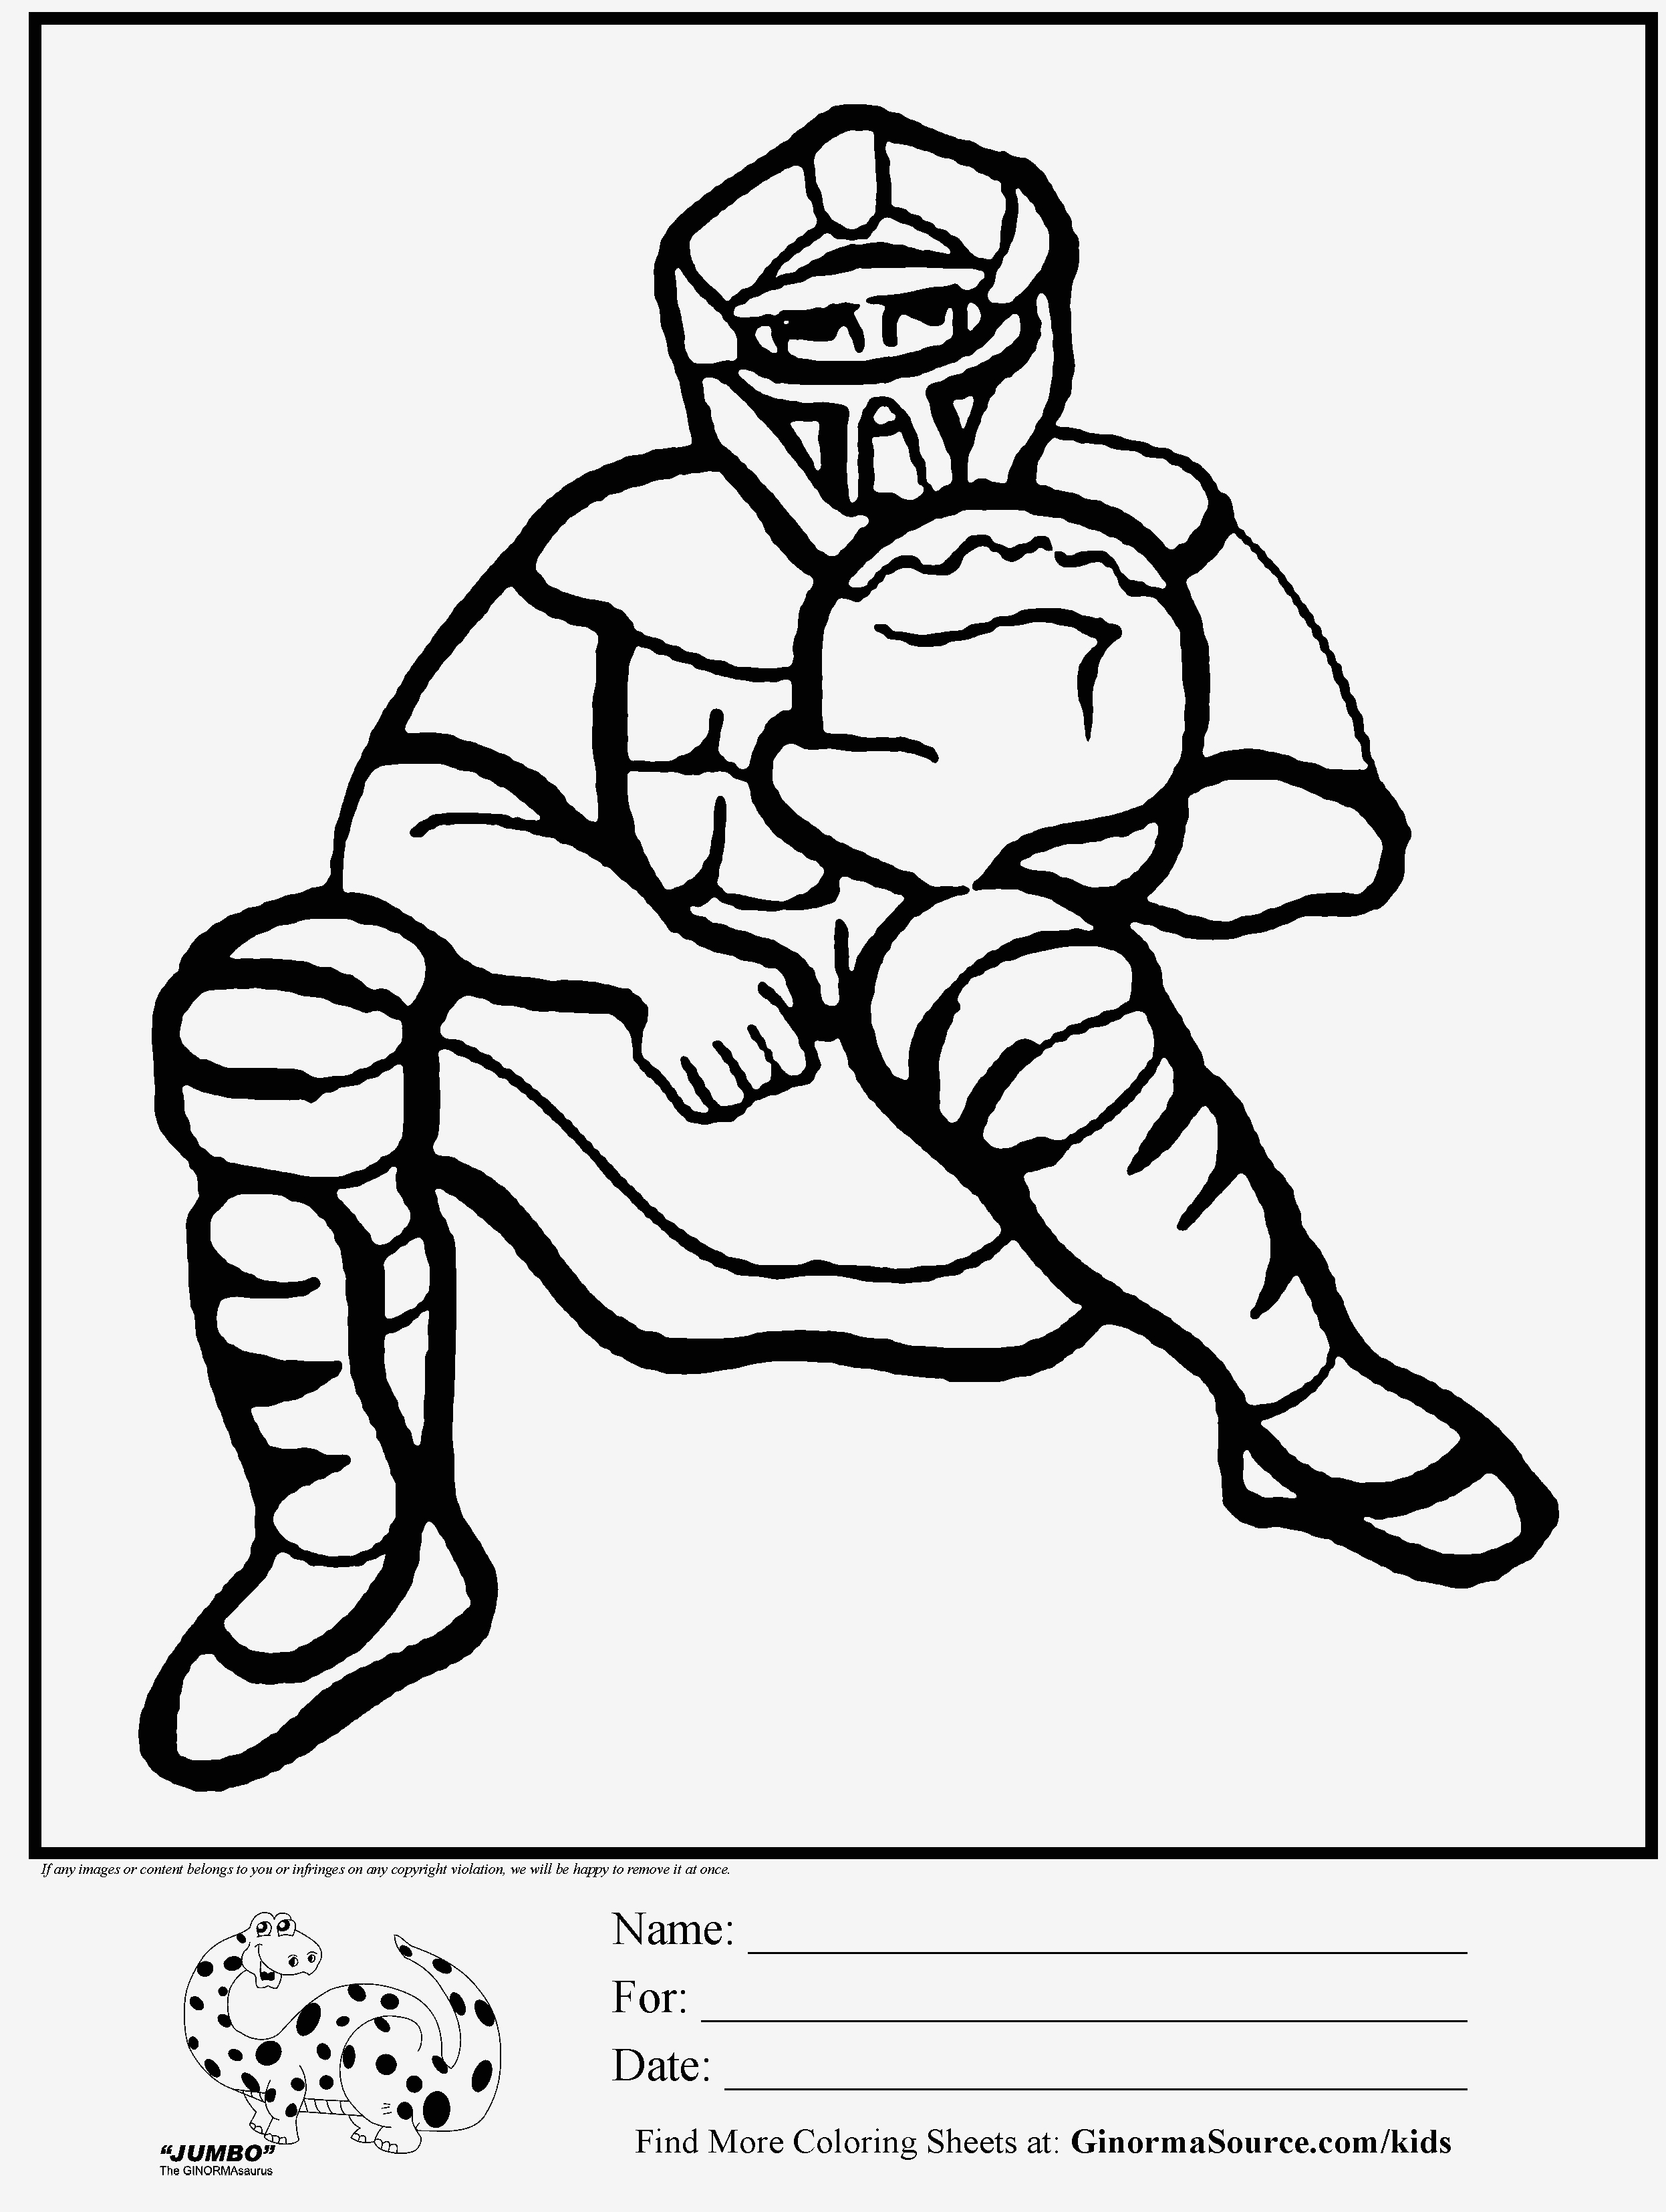 catcher coloring pages Download-Mlb Coloring Pages Easy and Fun Coloring Pages for Boys Baseball Catcher 7-l